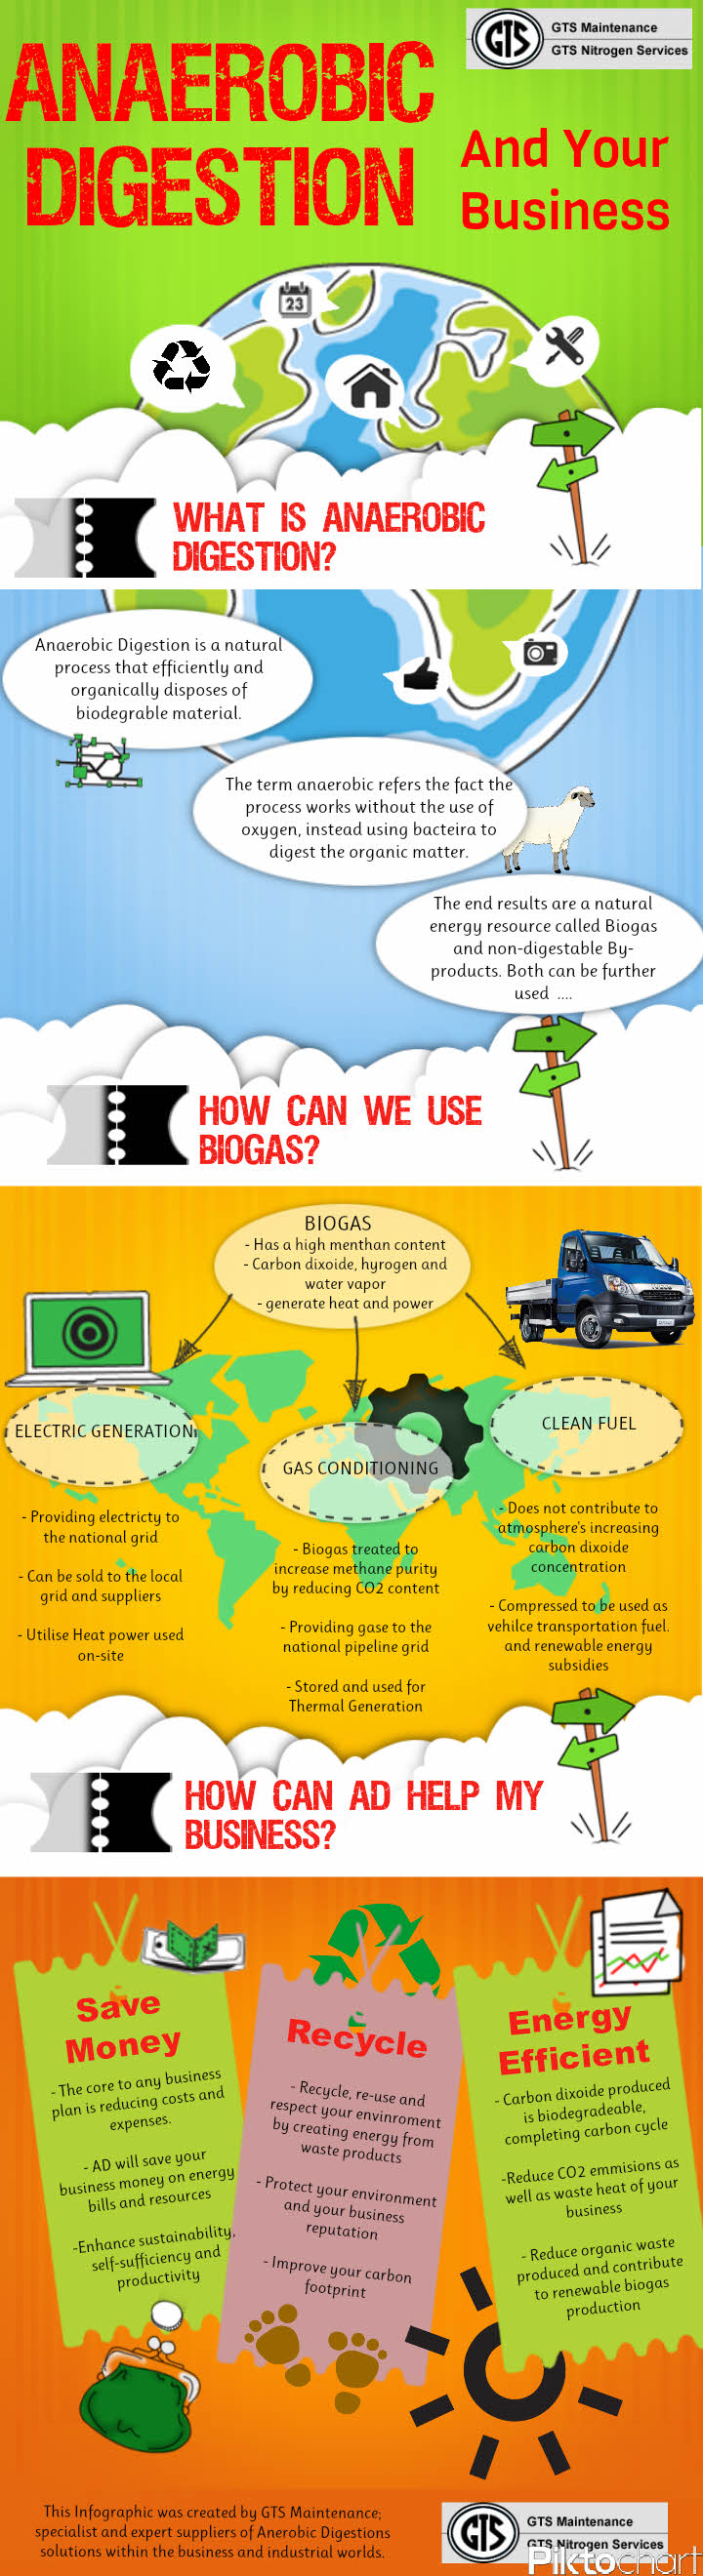 anaerobic digestion infographic